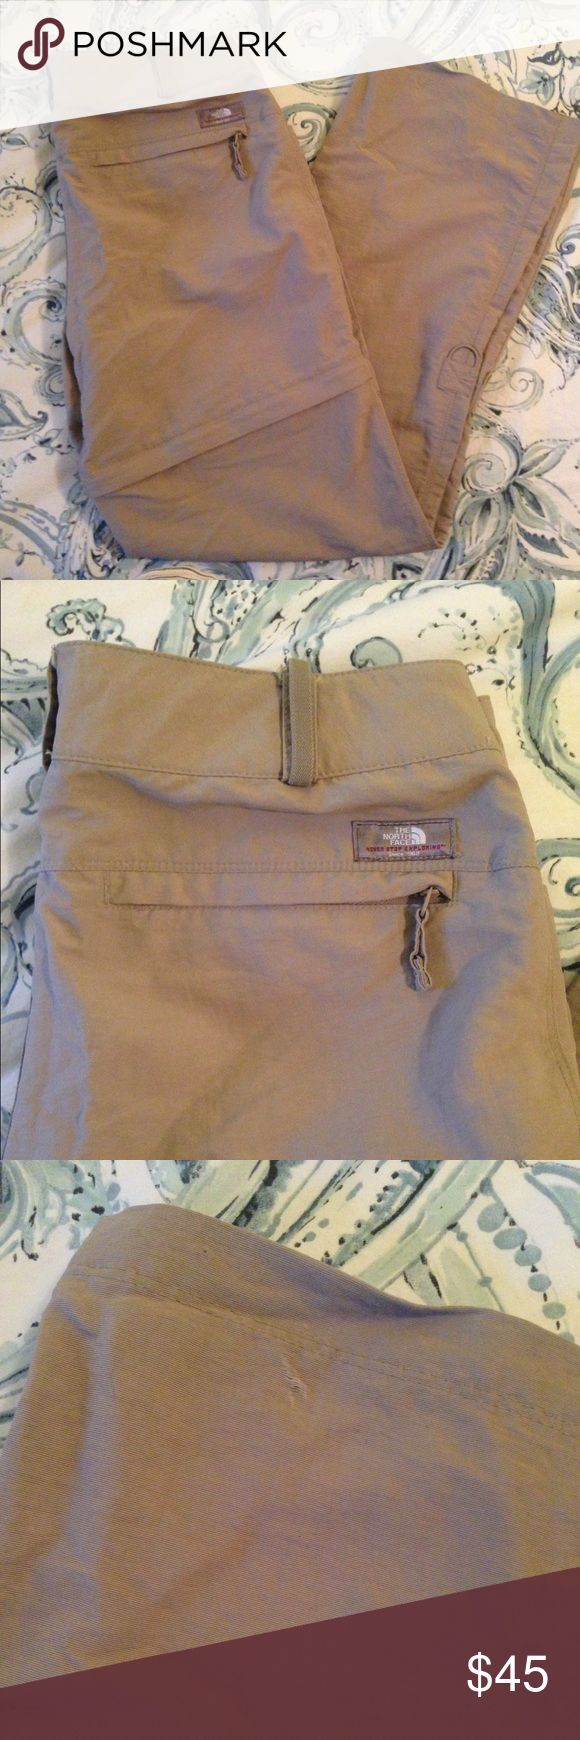 "North Face Tan ZipAway Convertible Pants Short 12 The North Face women's convertible hiking outdoor pants. Size 12.   Legs unzip to shorts or legs can be rolled up and buttoned to capris.  Inseam 31.25"" Shorts inseam 6"" Leg opening 9.5"" Waist laying flat 17.5""  100% nylon The North Face Pants Track Pants & Joggers"